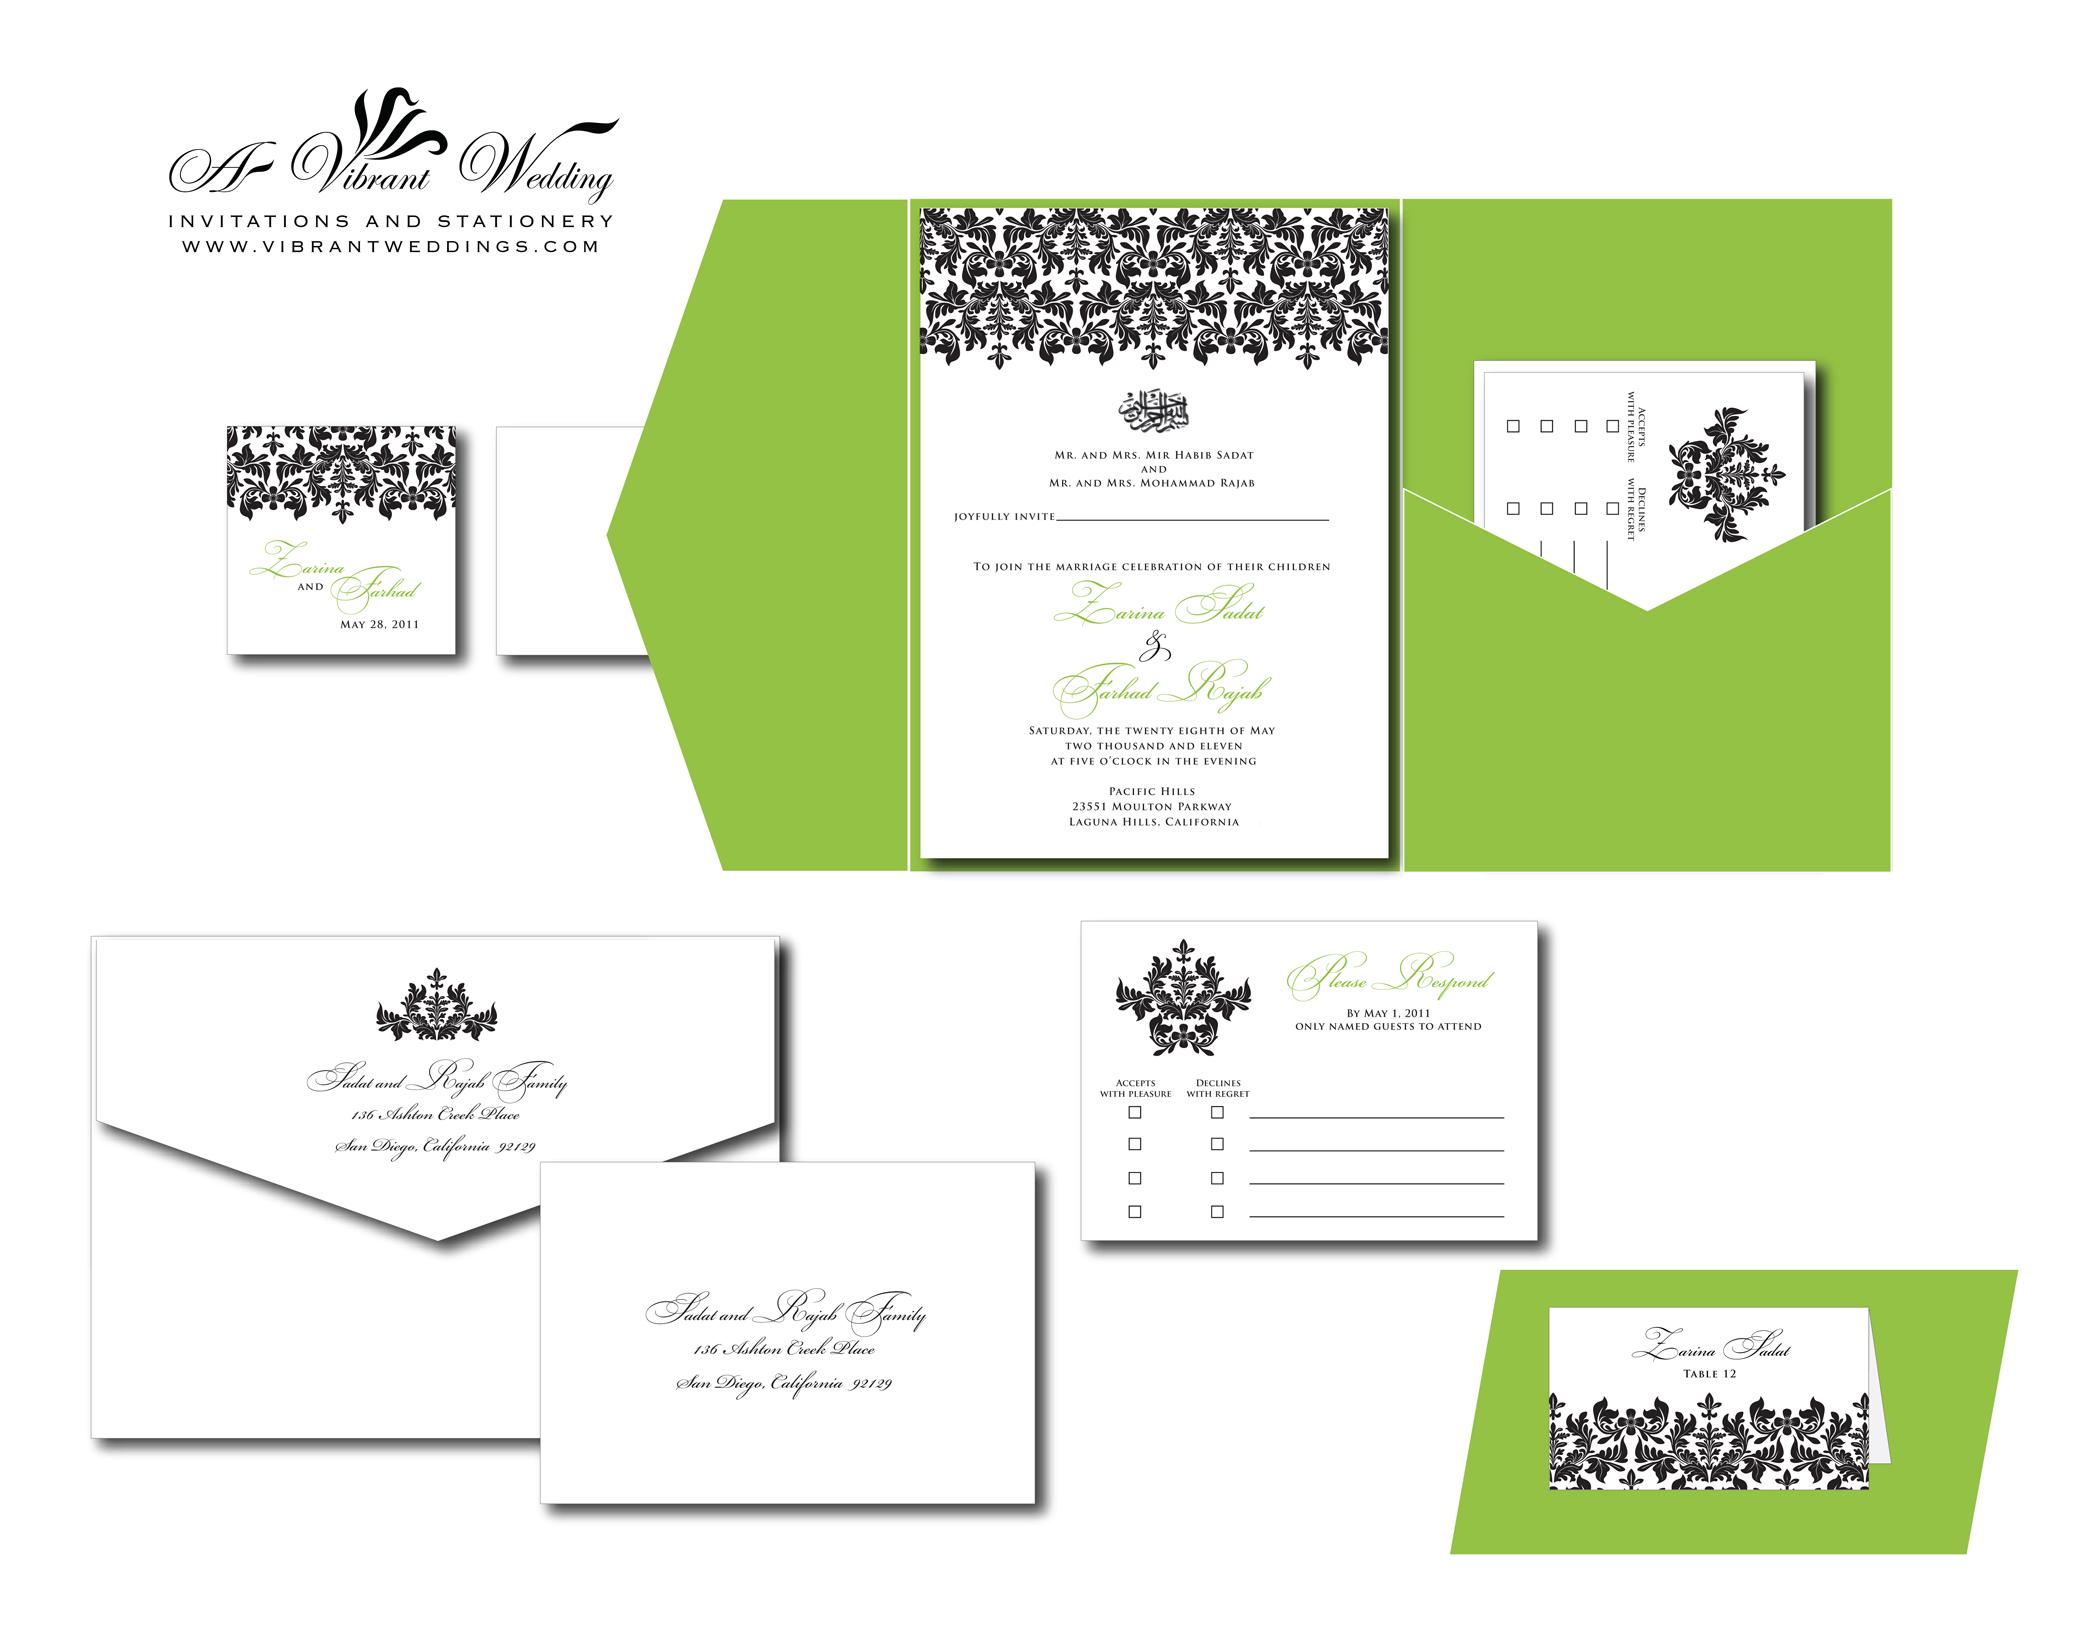 Damask Theme Designs – A Vibrant Wedding